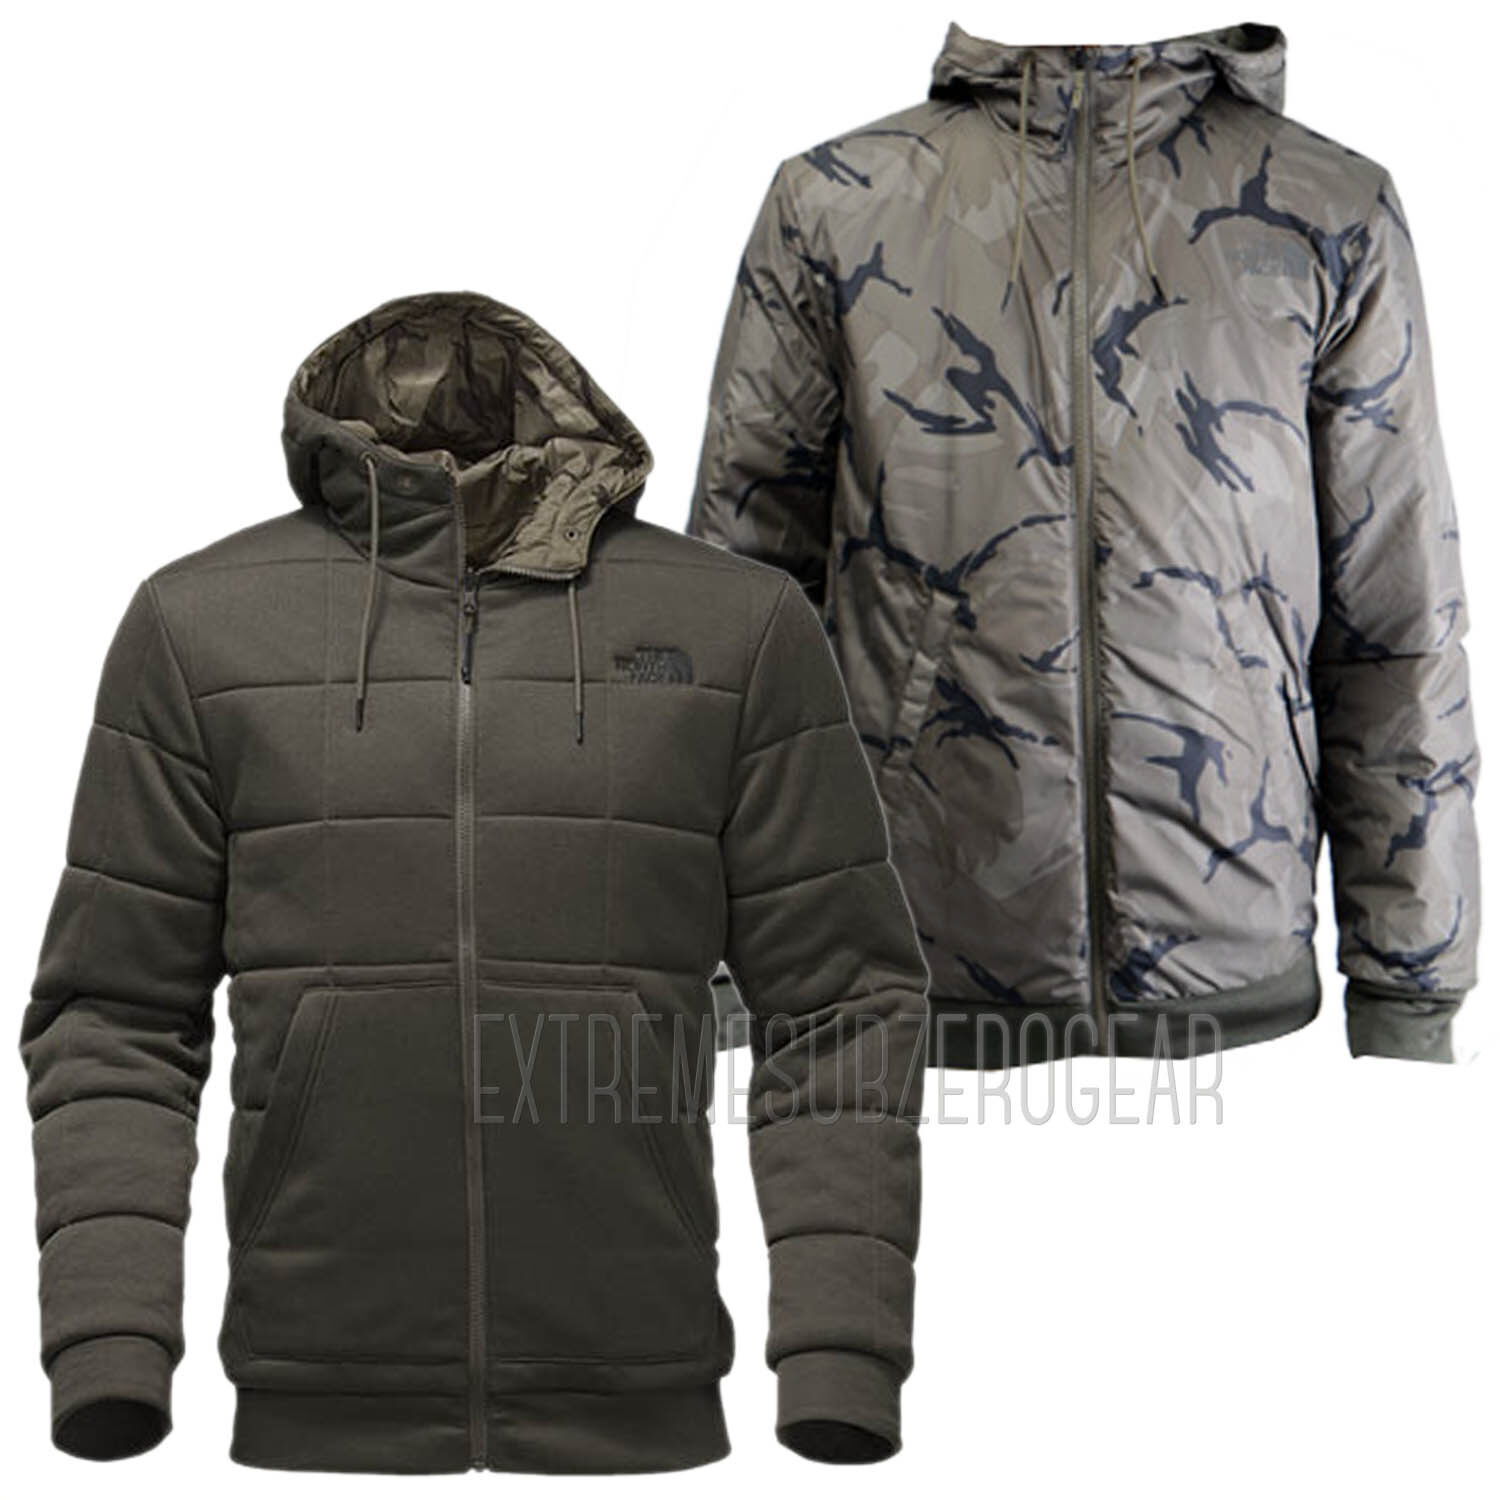 THE NORTH FACE Mens 2018 KINGSTON REVERSIBLE HOODIE New Taupe Green Disrupt Camo